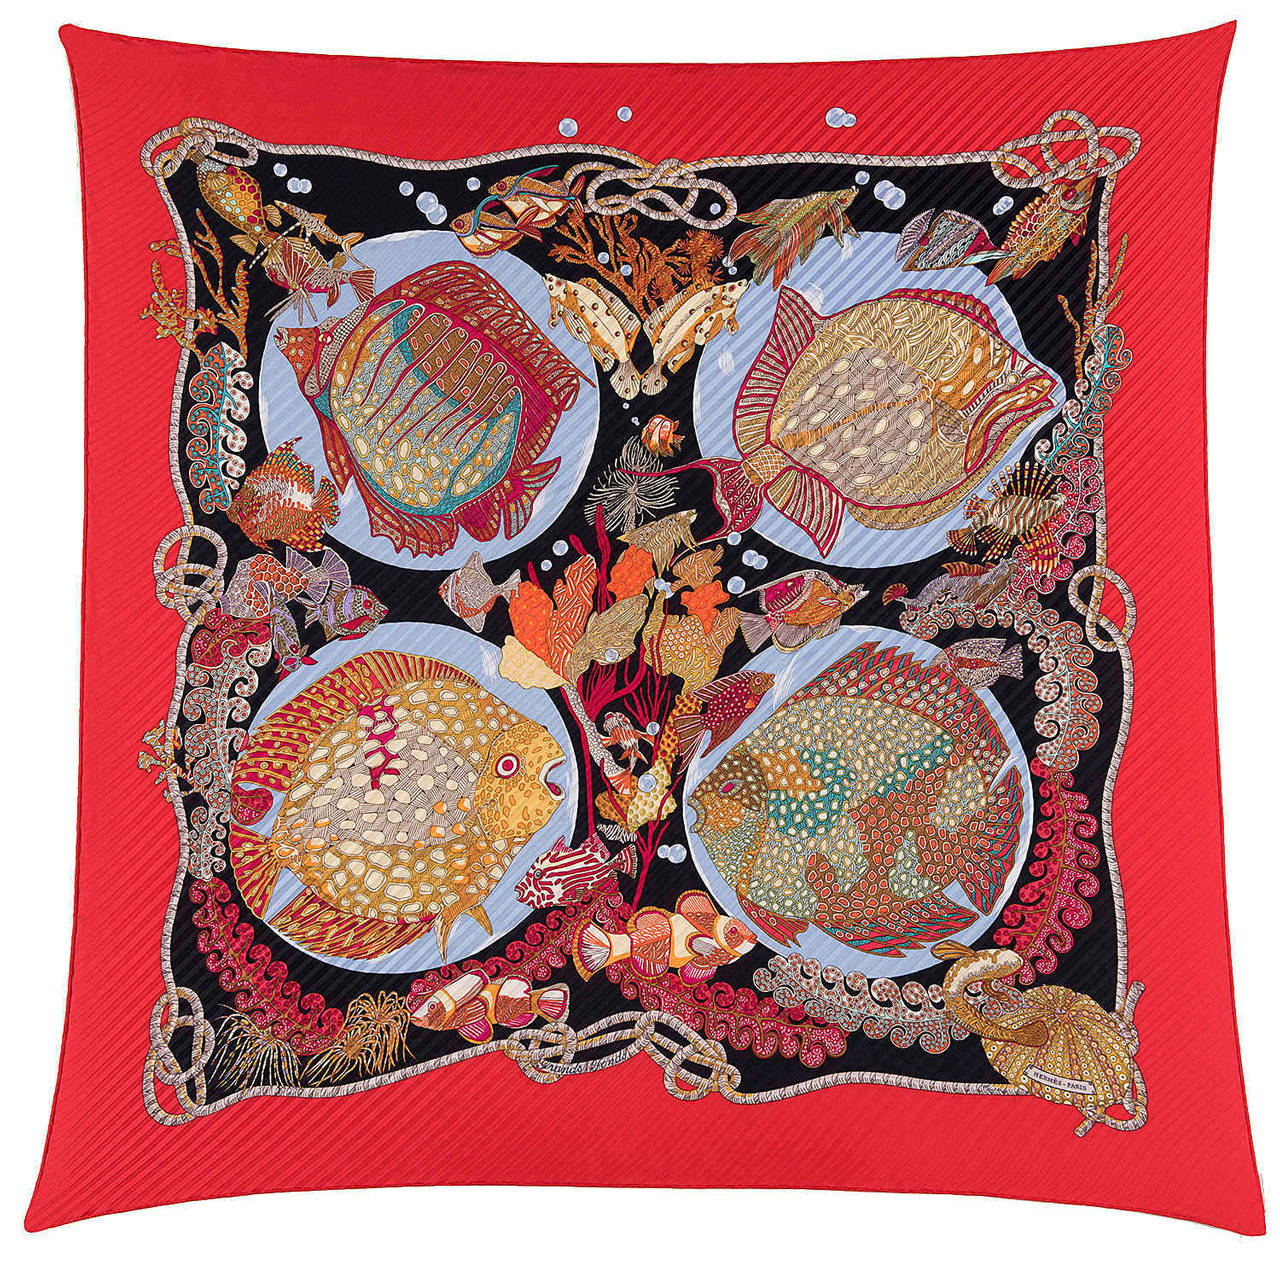 A Rare Hermes Pleated Silk Scarf 'Grand Fond' by Annie Faivre